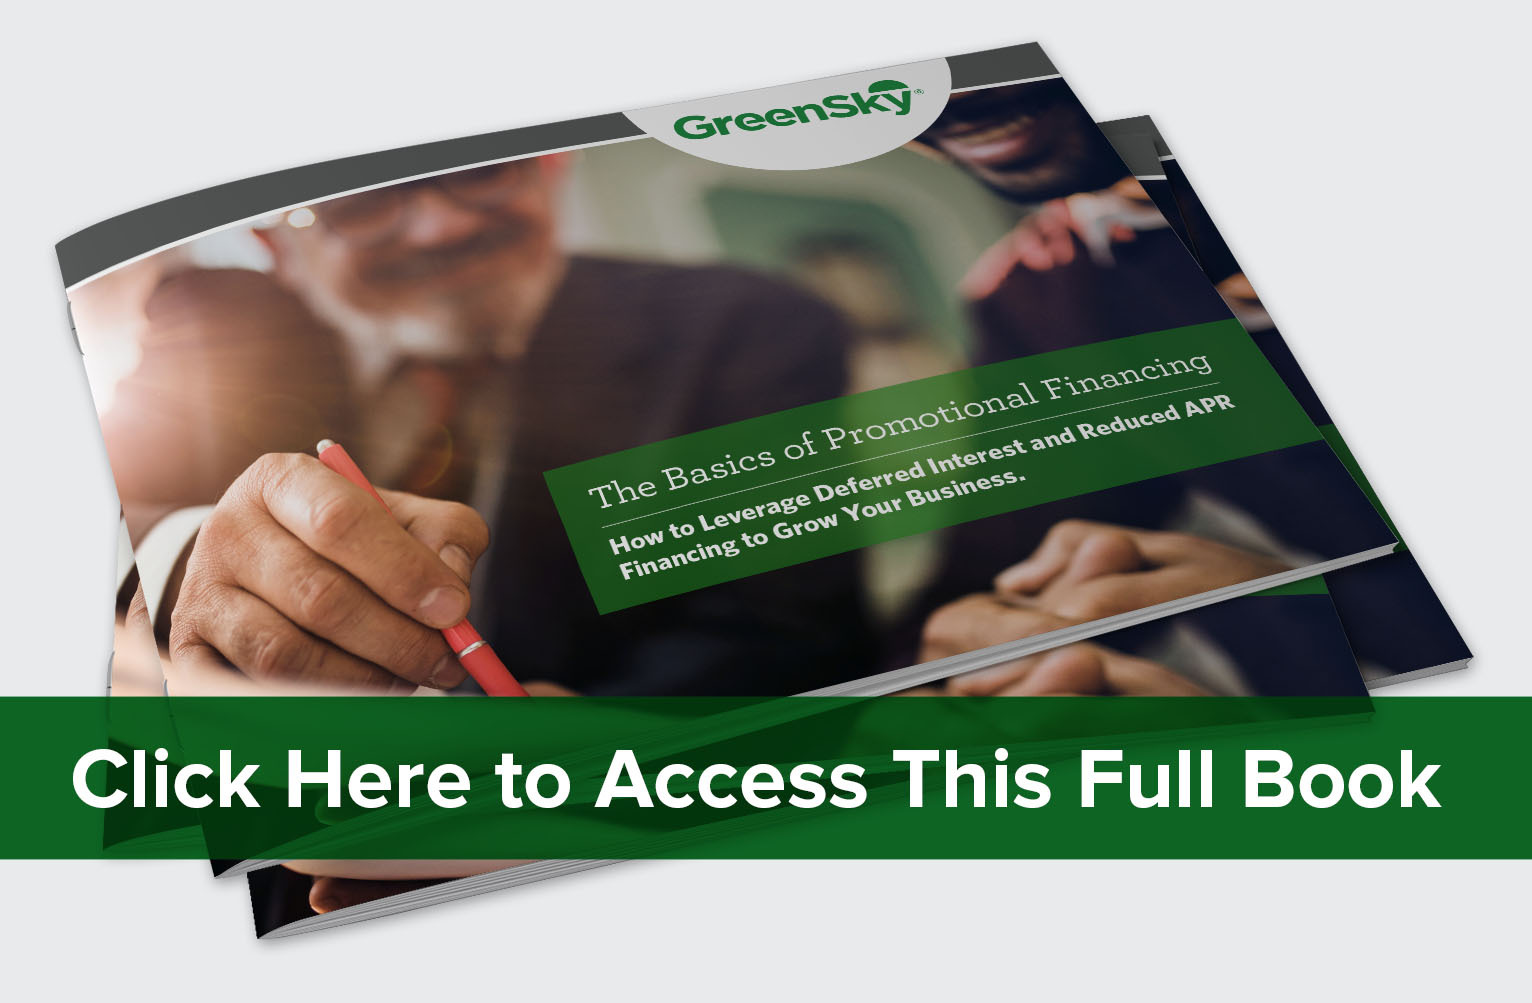 The Basics of Preferred Financing eBook Download